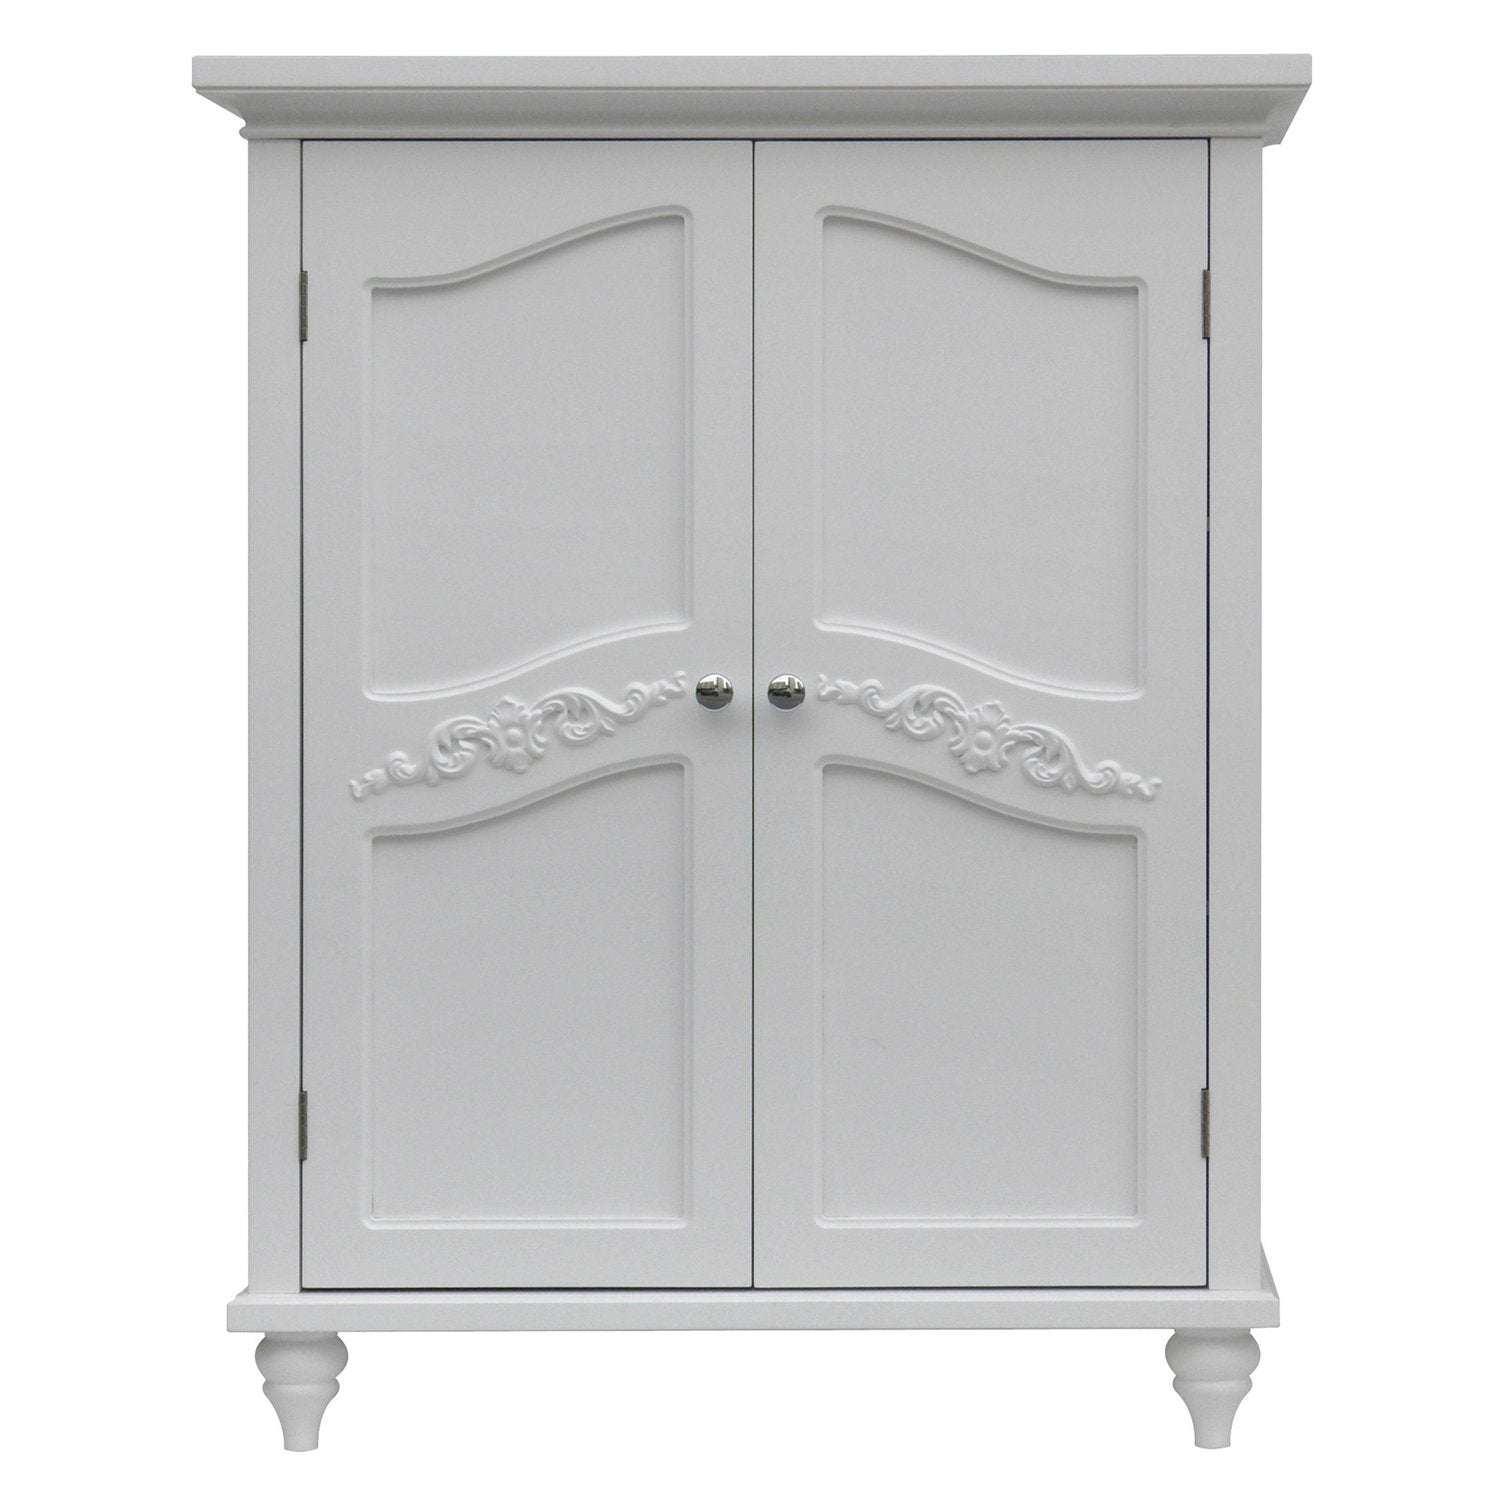 Bathroom Linen Storage Floor Cabinet with 2-Doors in White Wood Finish